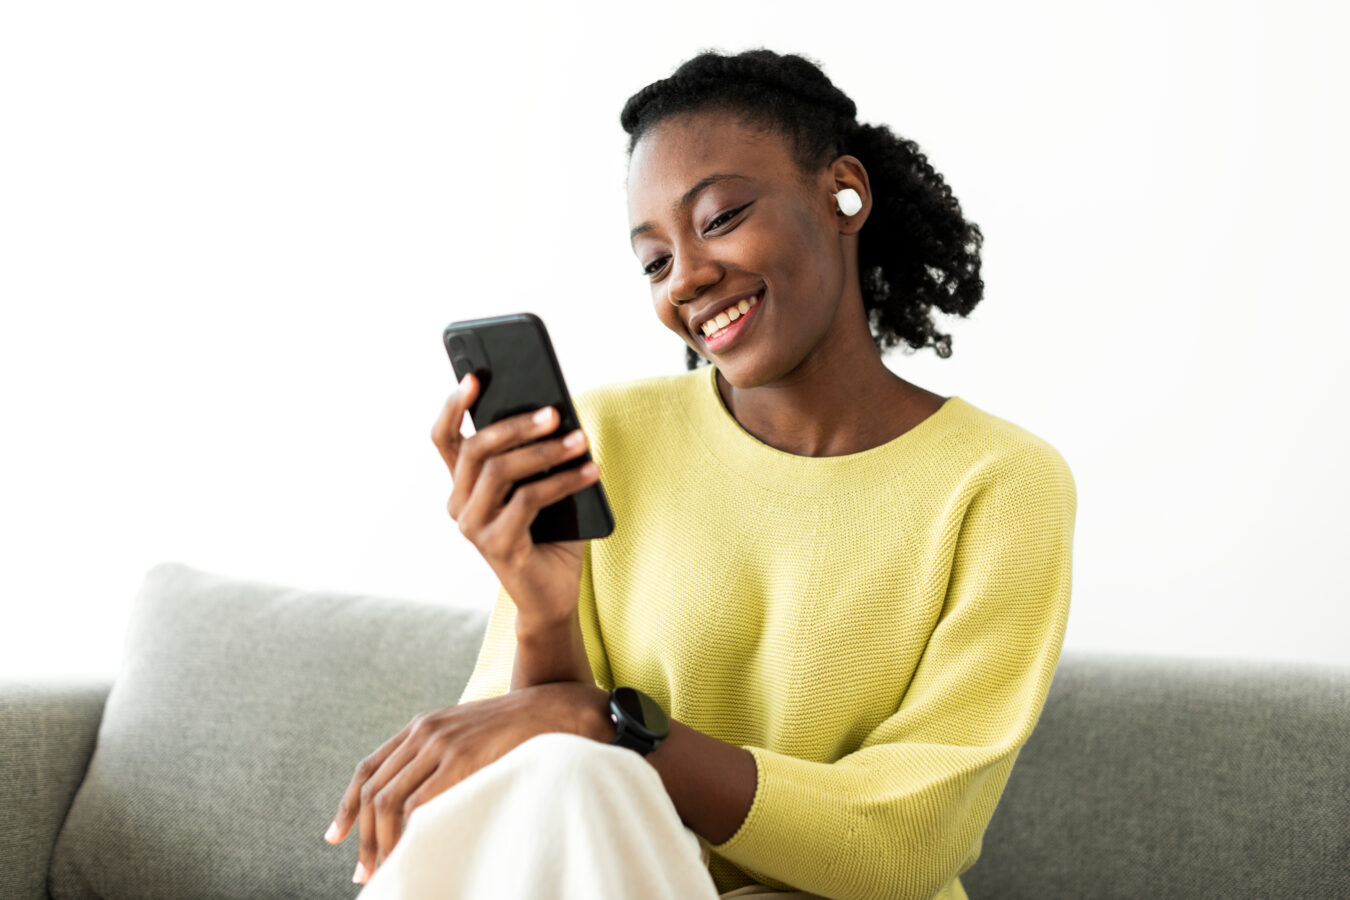 A woman uses her phone to go through the digital customer journey.